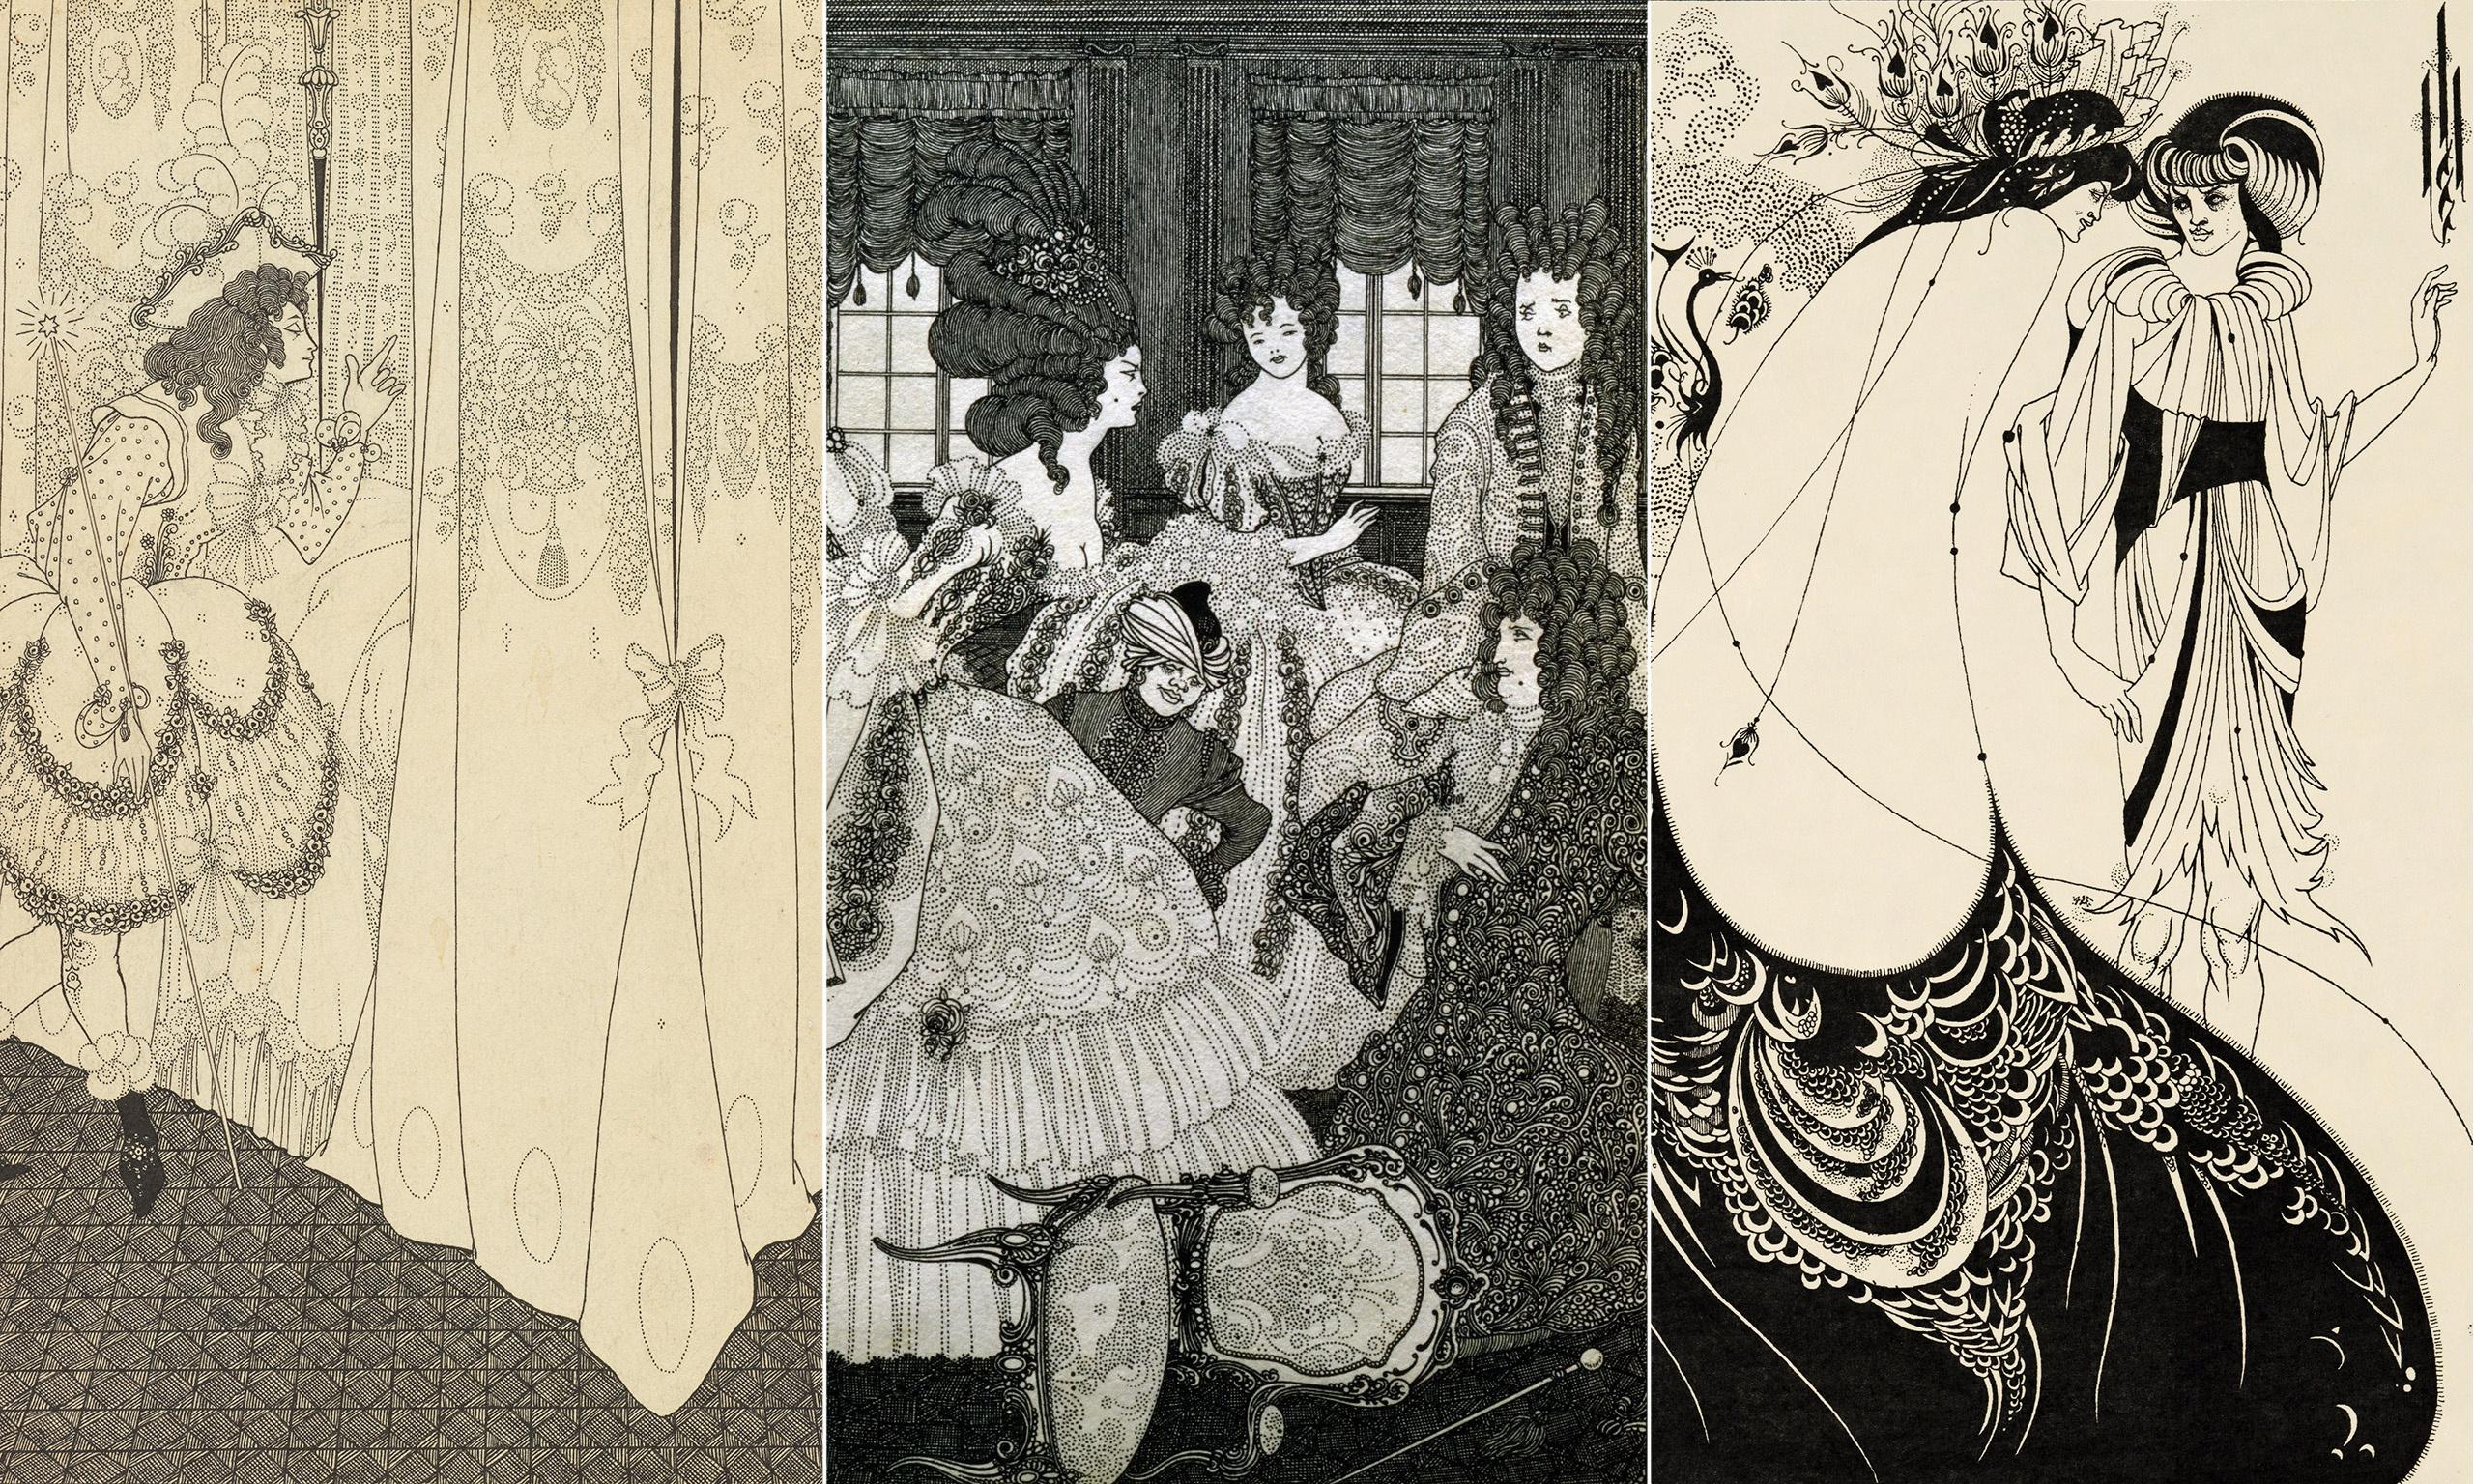 Erotic reveries from Beardsley and a Jedi robe – the week in art